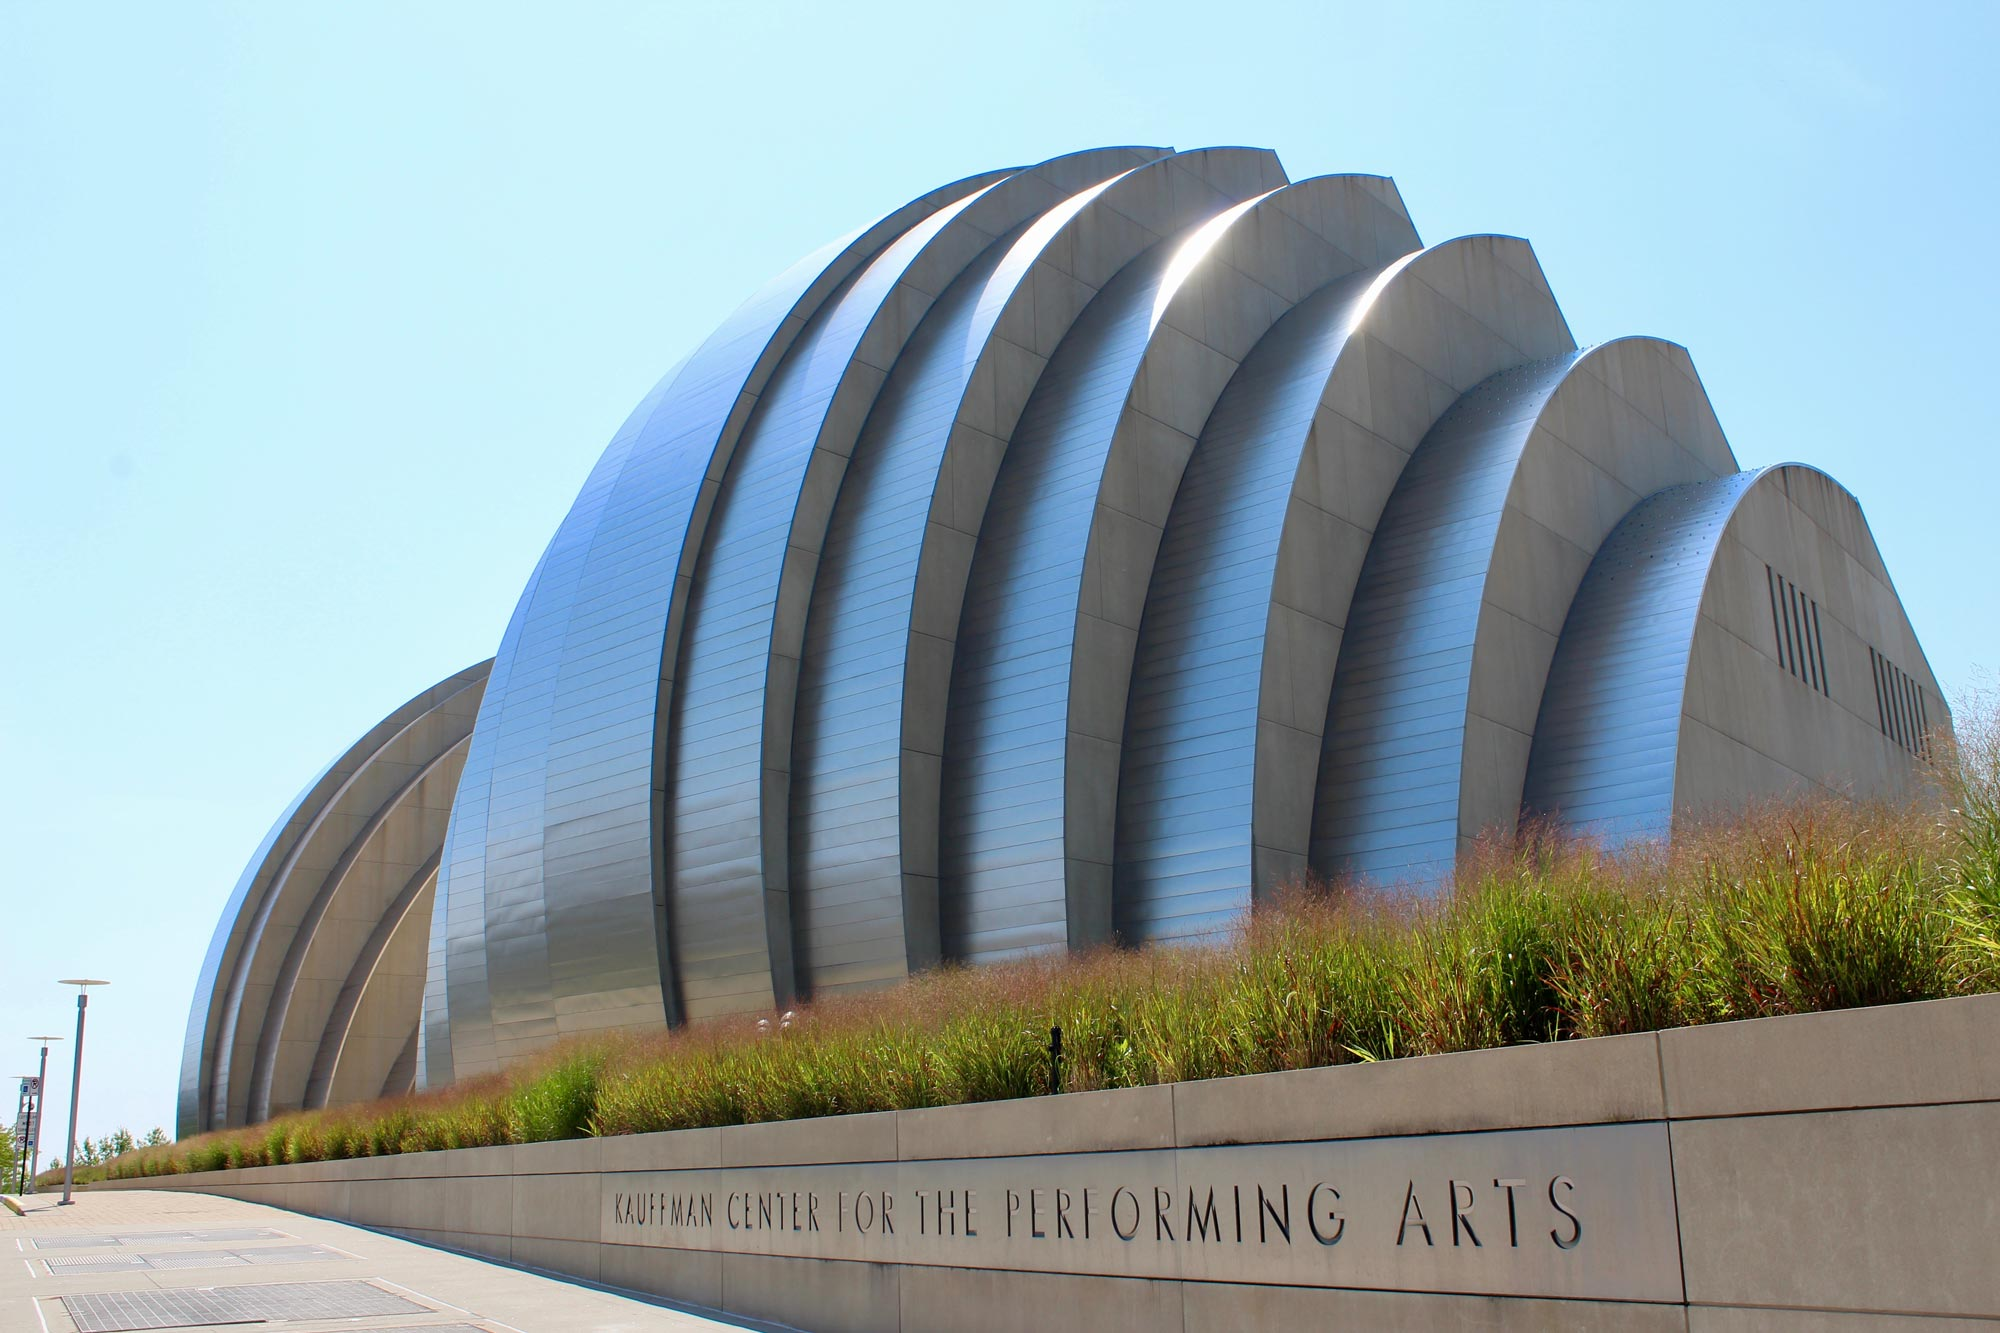 Kauffman Center for the Performing Arts Day